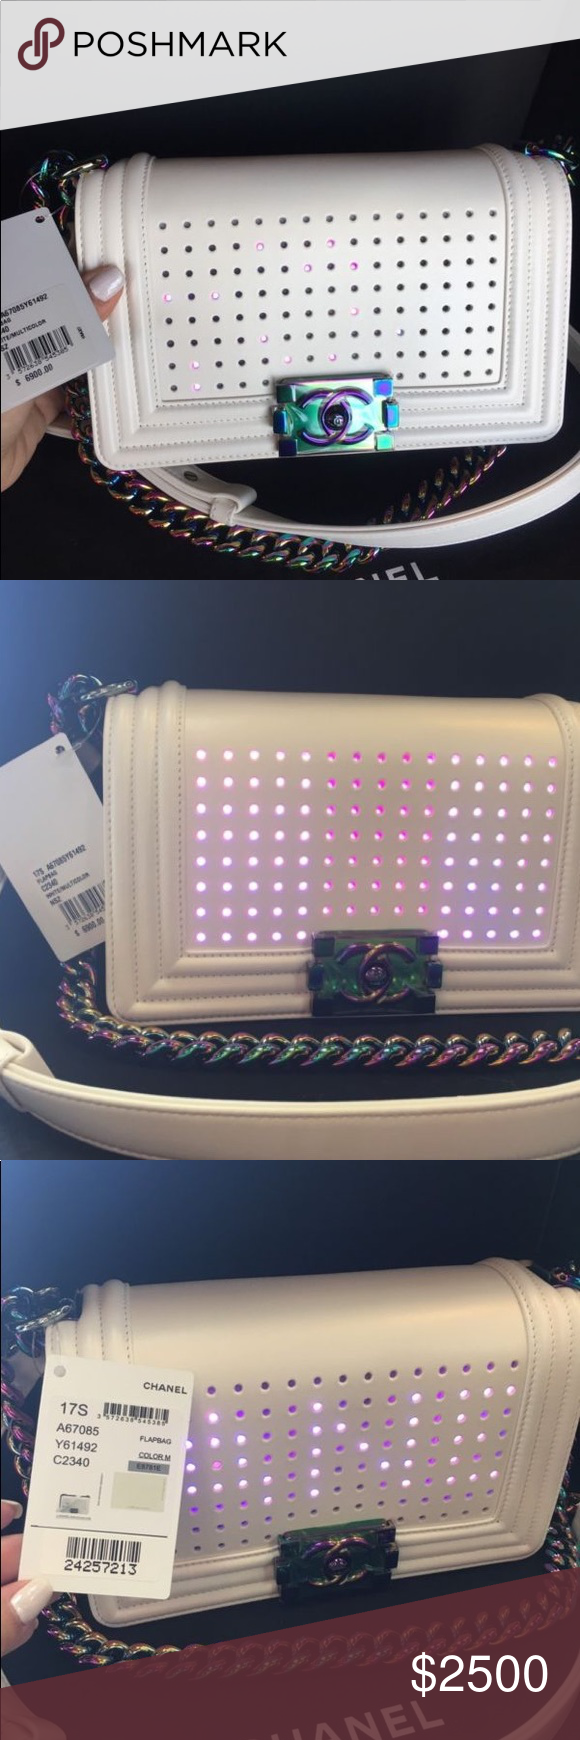 196575727f12 LED WHITE BOY BAG IRIDESCENT RAINBOW HARDWARE 100% authentic. Gorgeous bag.  2017!! New!! Price is negotiable. Text me for more details 2059974929 CHANEL  ...